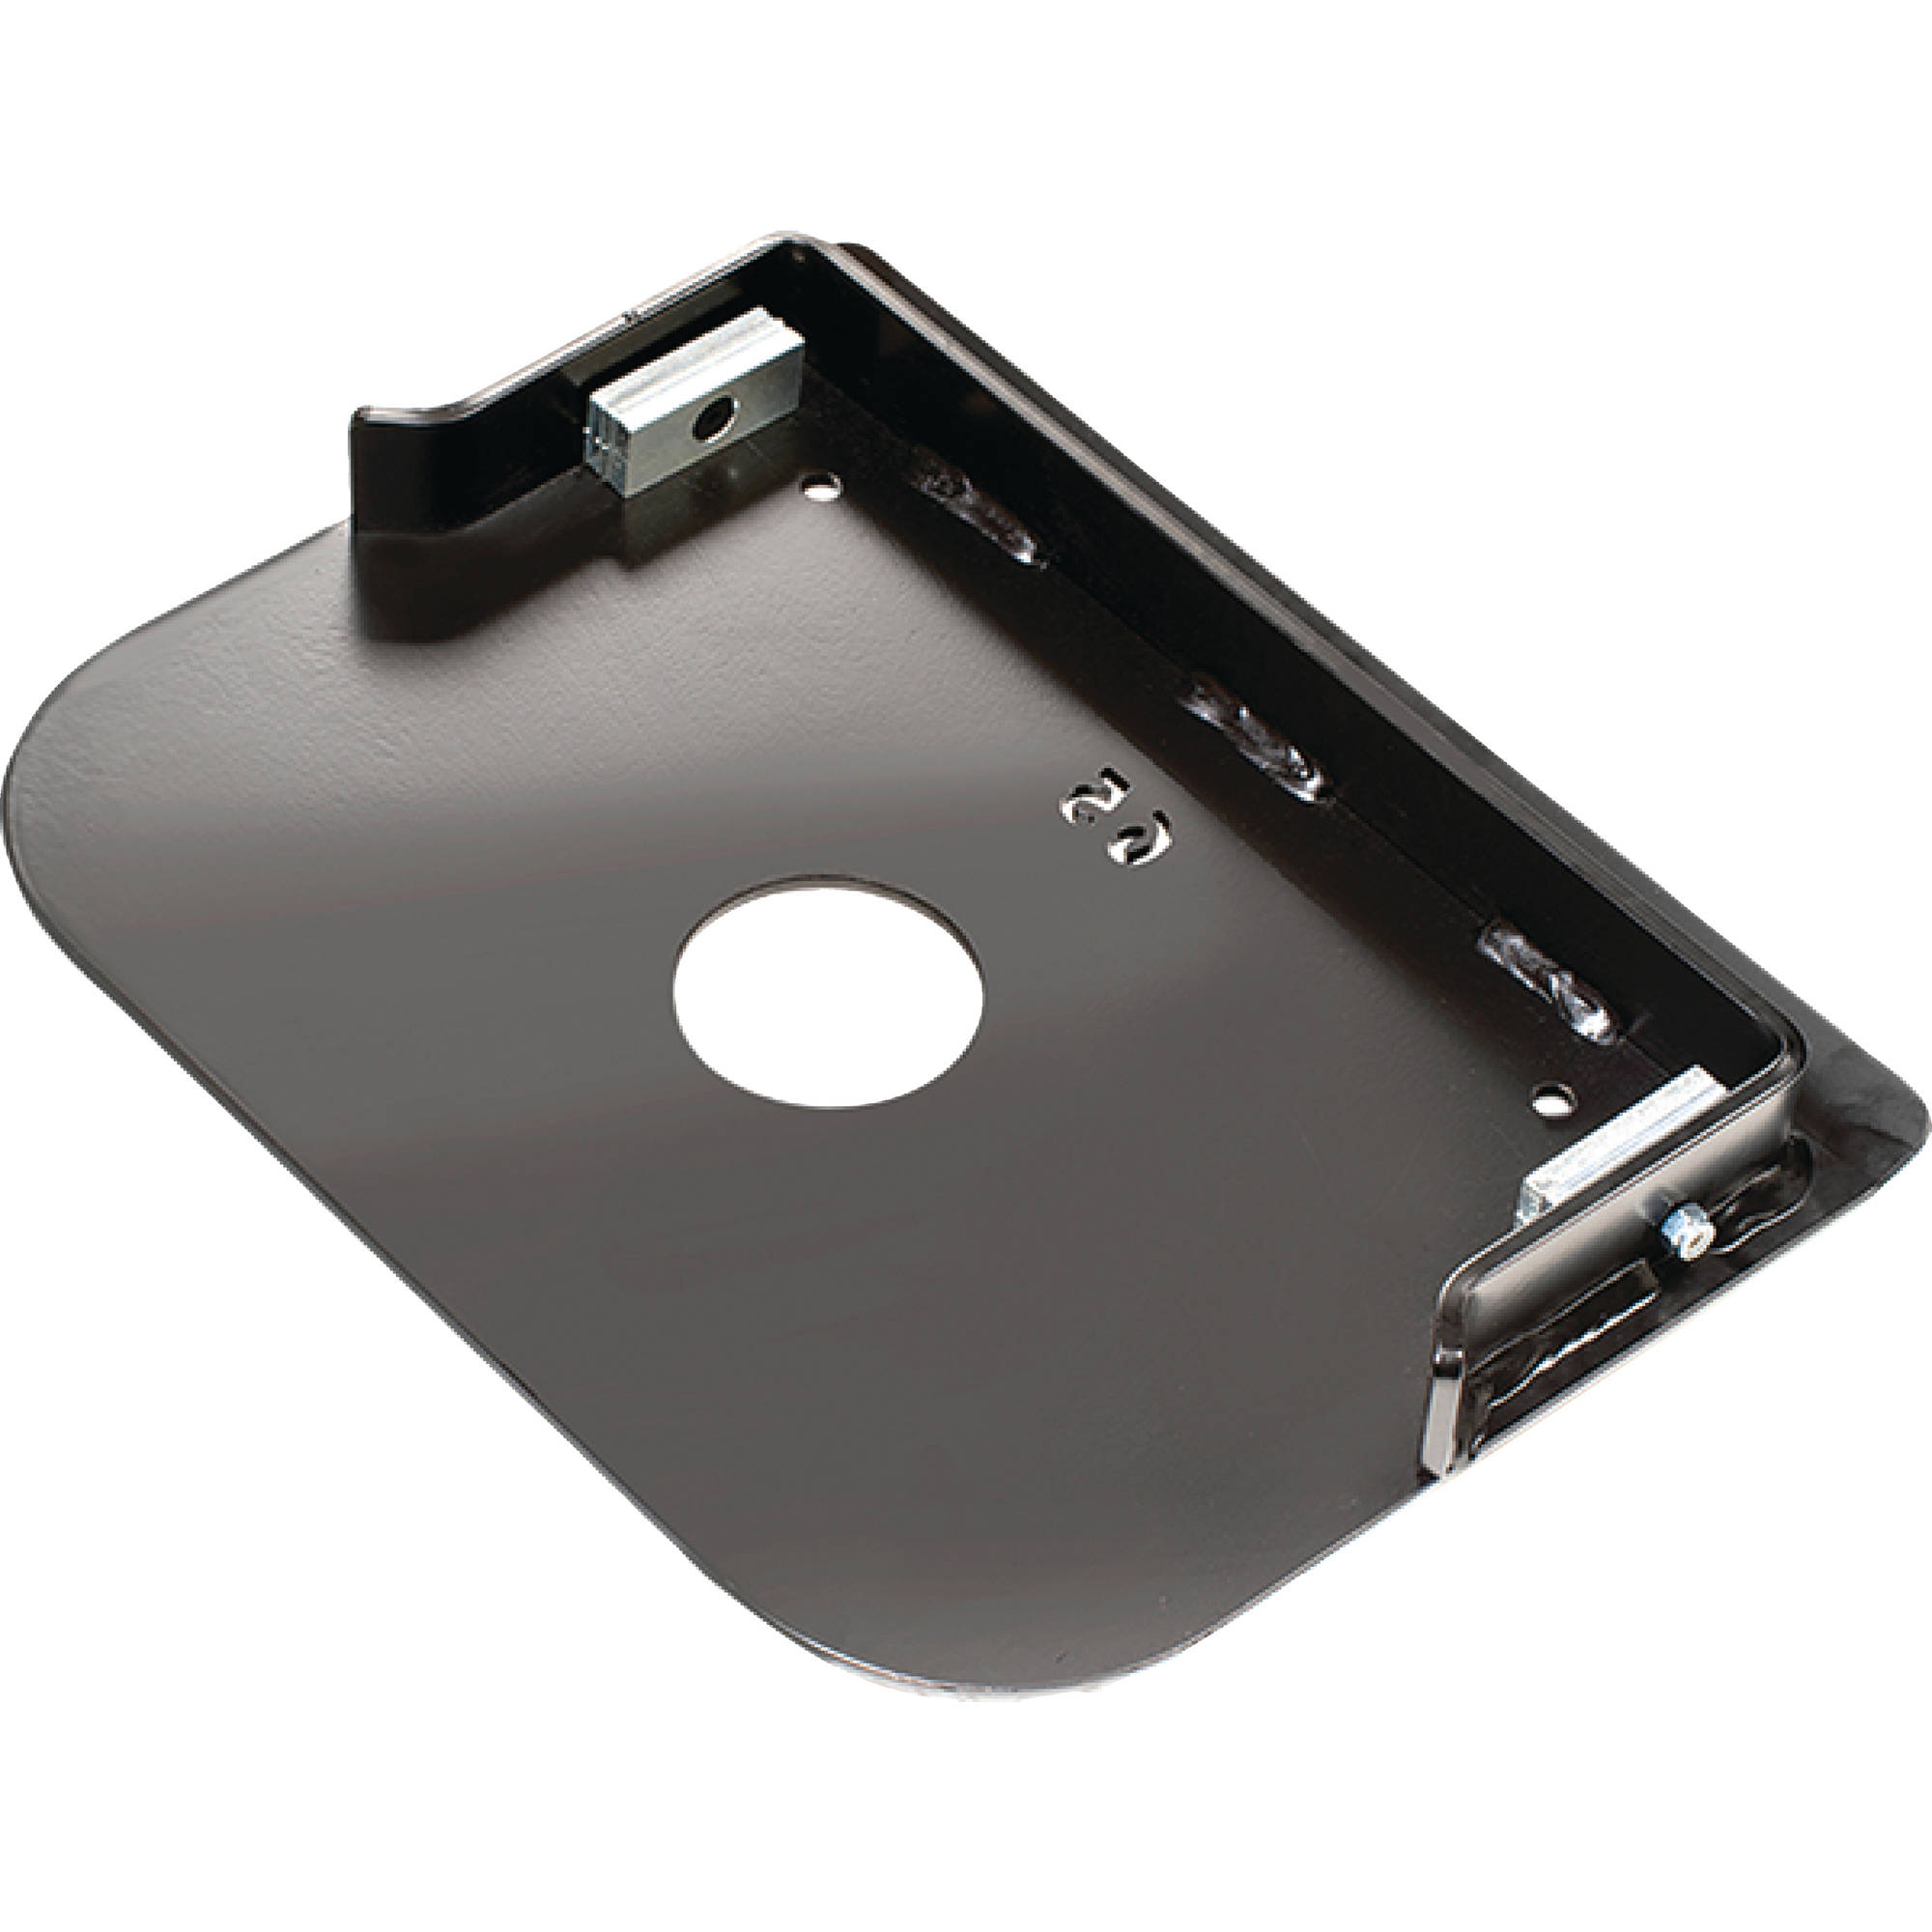 Pullrite 3365 QuickConnect Multi-Fit Capture Plate for Fabex & Lippert King Pin Box Models